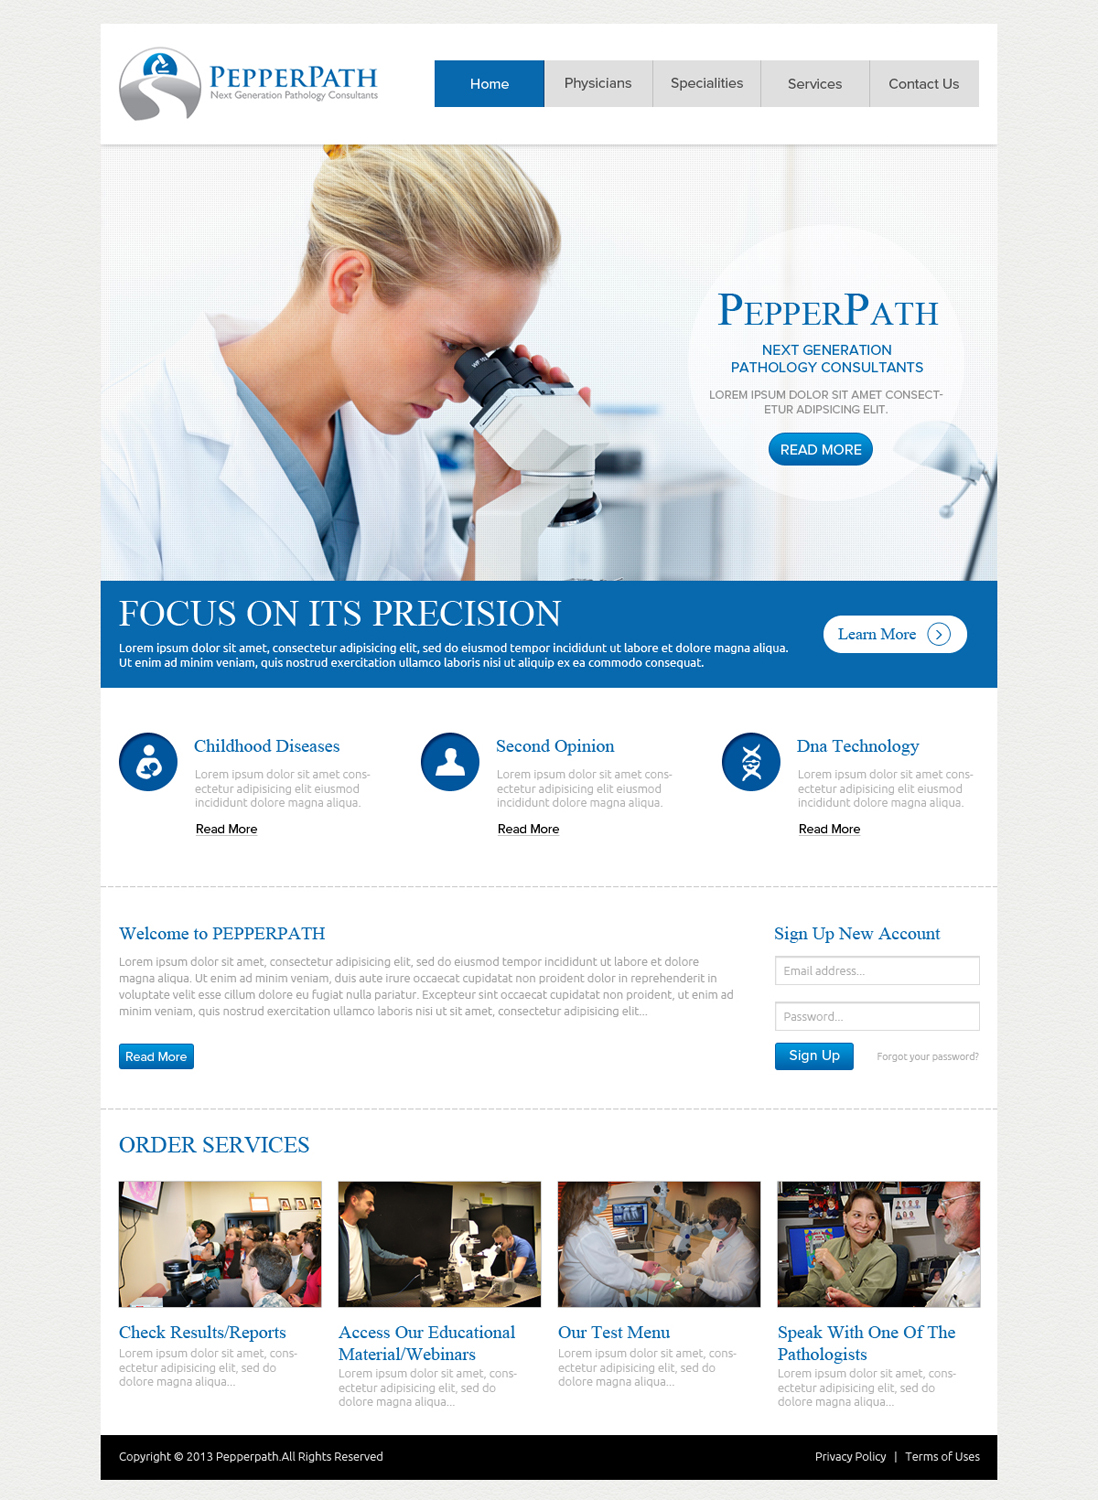 Web Design By OM For Design Website Home Page For Pathology Consulting  Company   Design #